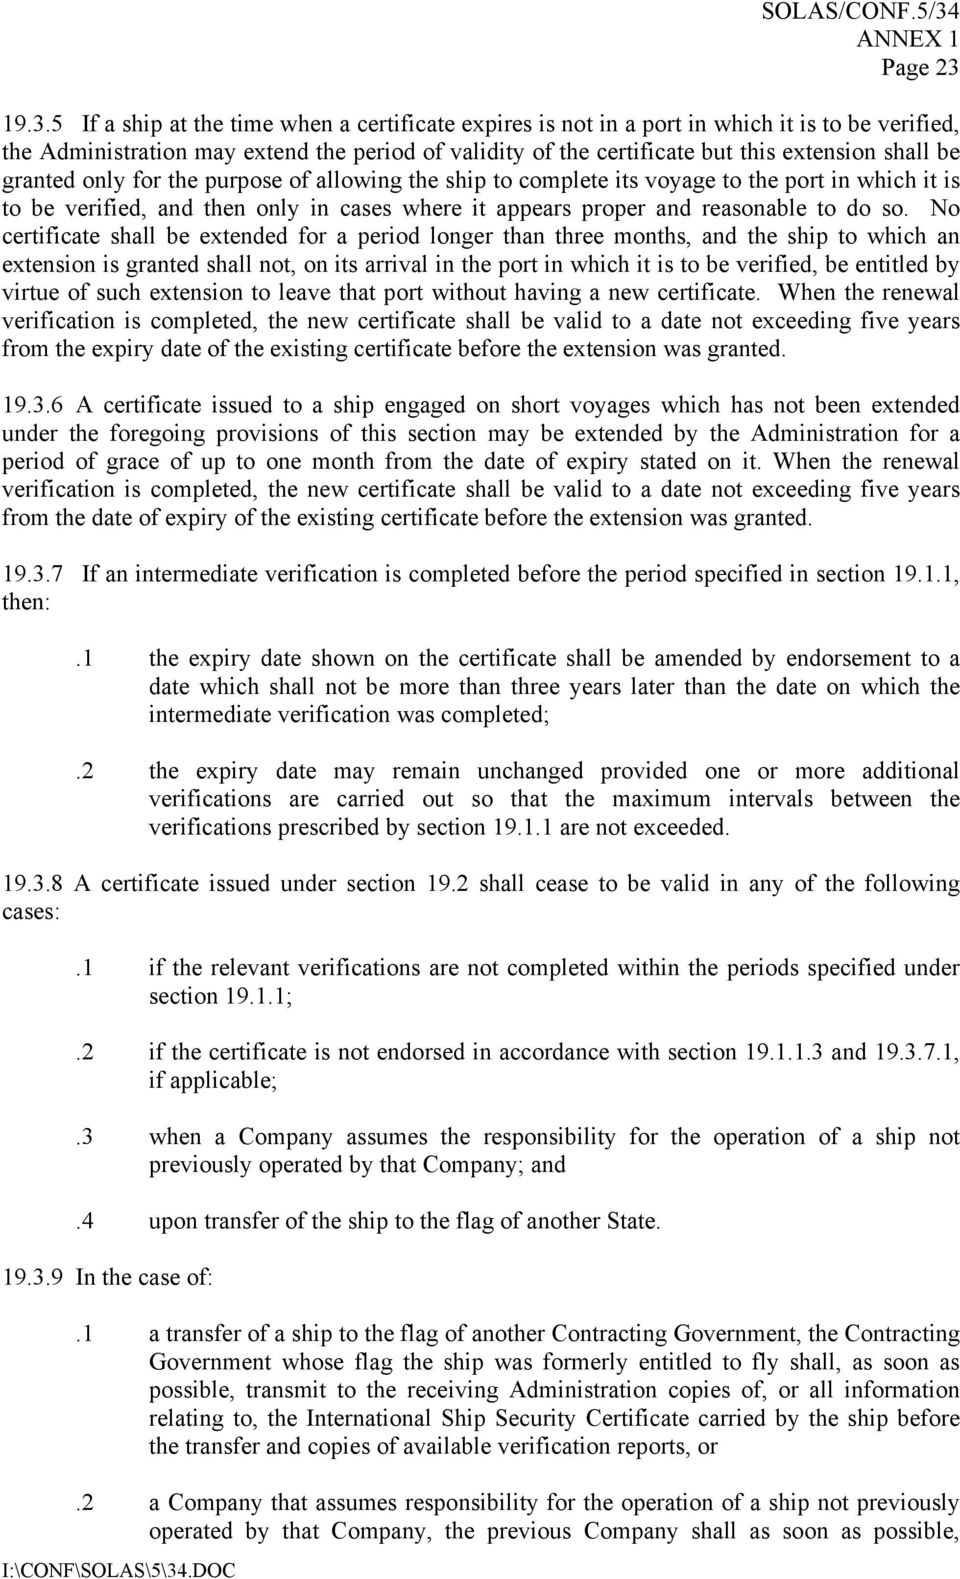 19.3.5 If a ship at the time when a certificate expires is not in a port in which it is to be verified, the Administration may extend the period of validity of the certificate but this extension